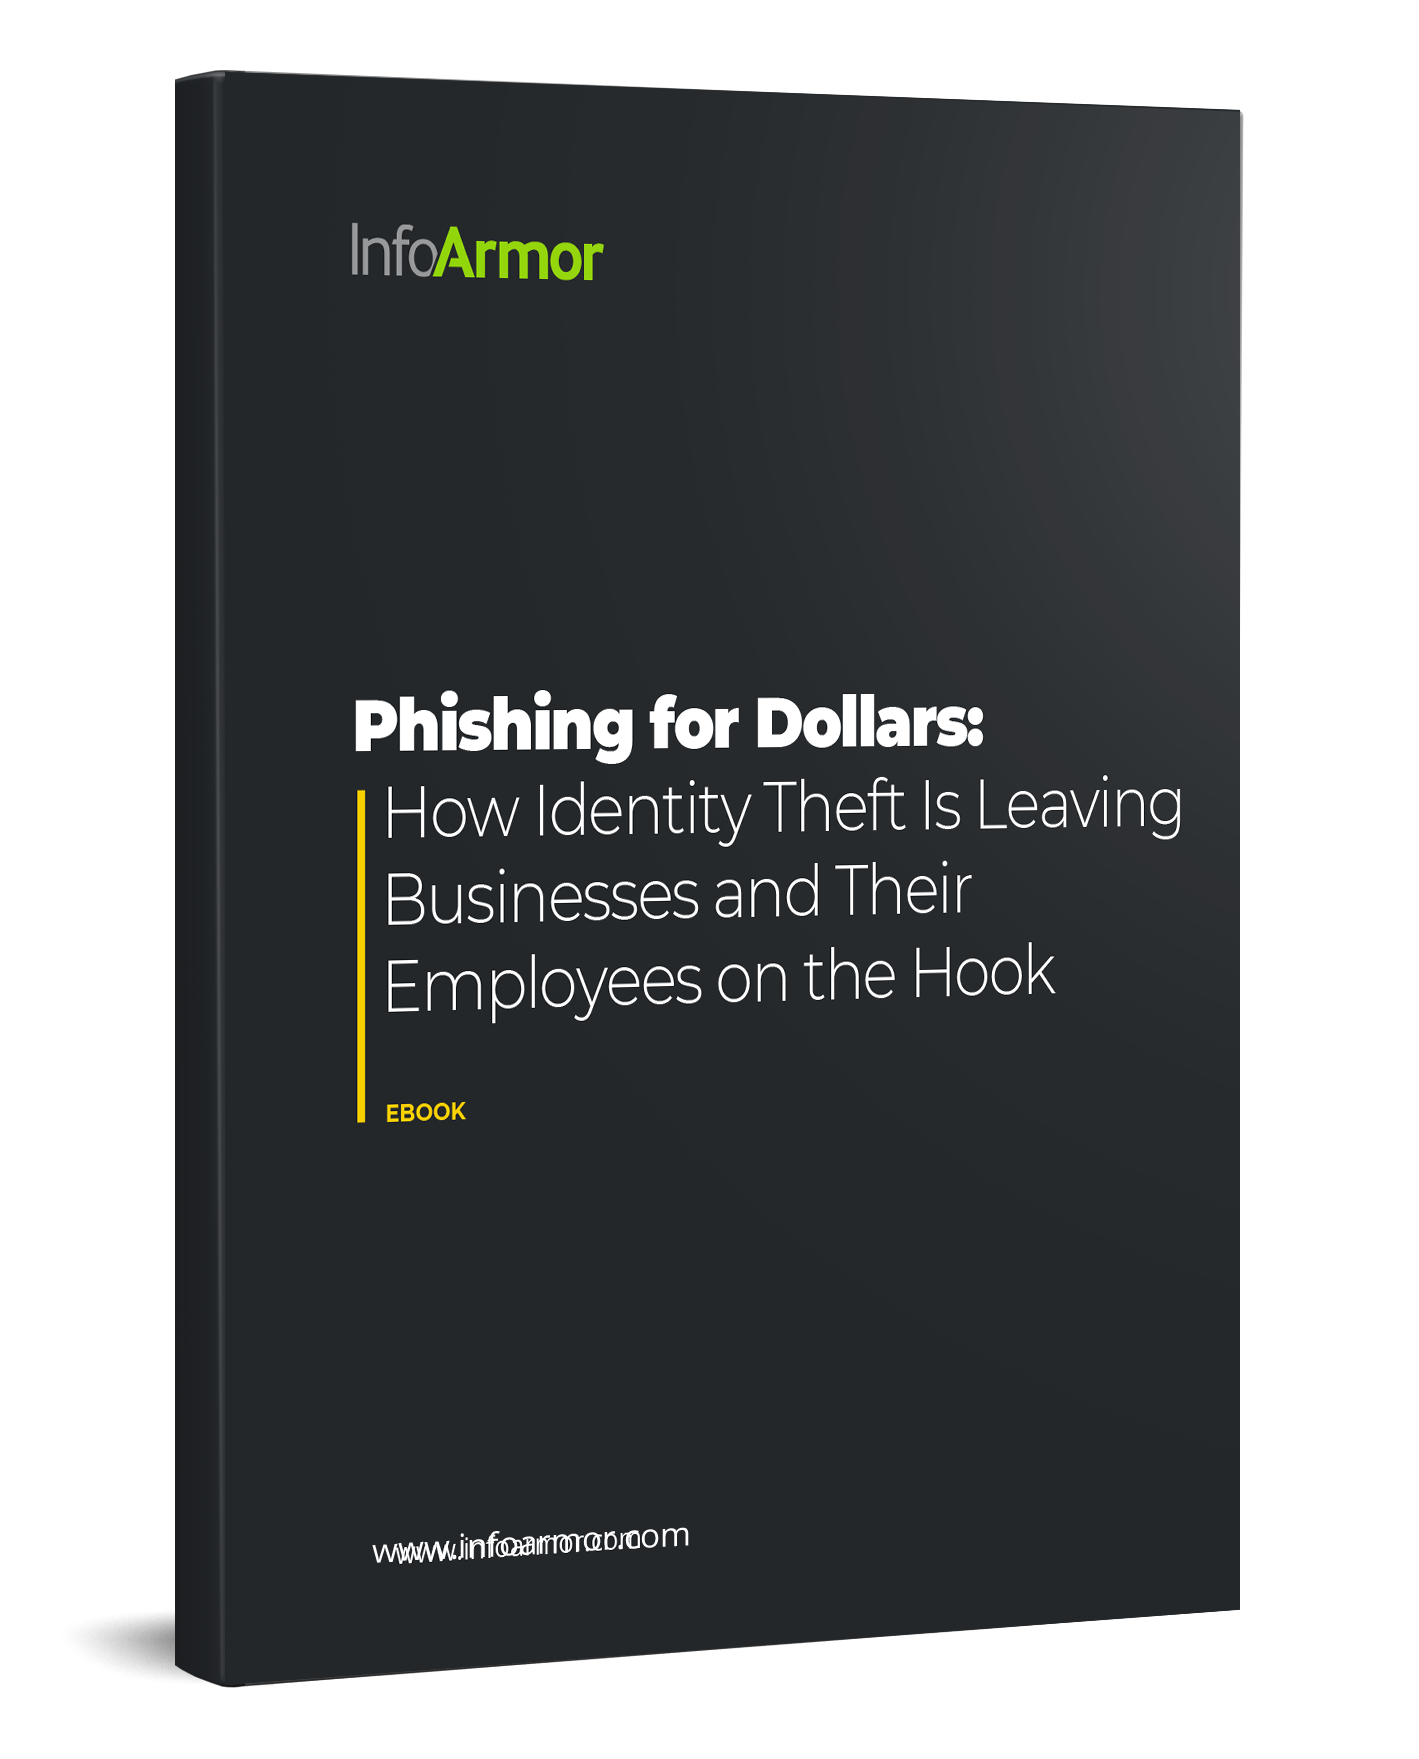 Phishing for Dollars: How Identity Theft Is Leaving Businesses and Employees on the Hook